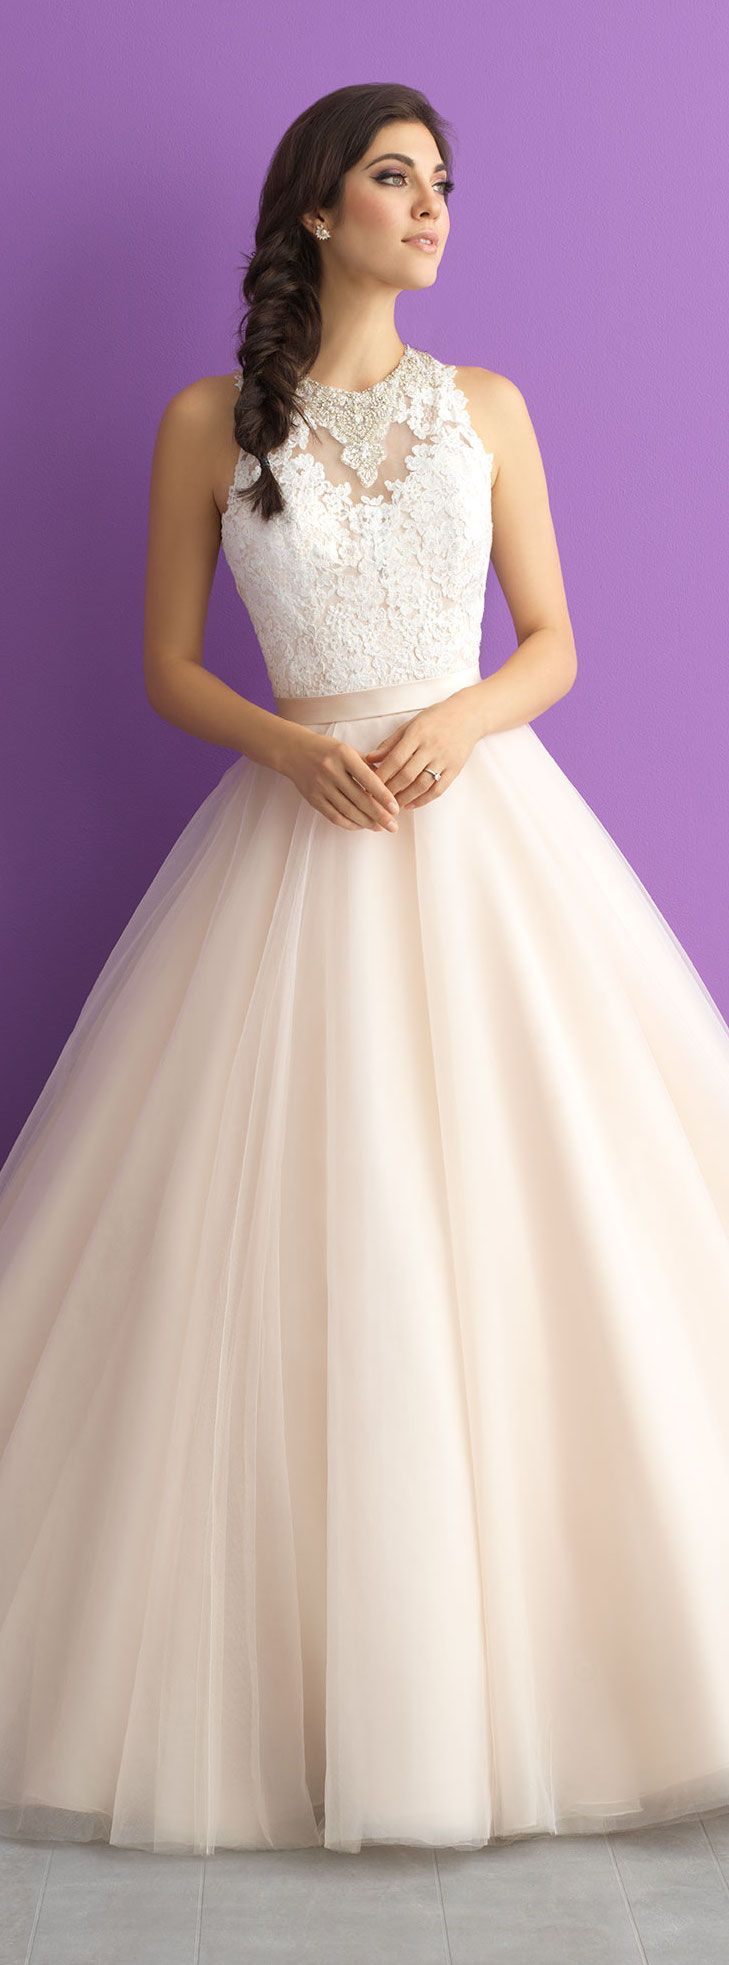 Allure Romance Wedding Dress   With a jewel encrusted collar, lace bodice and sweeping train - this ballgown is unforgettable   @llurebridals